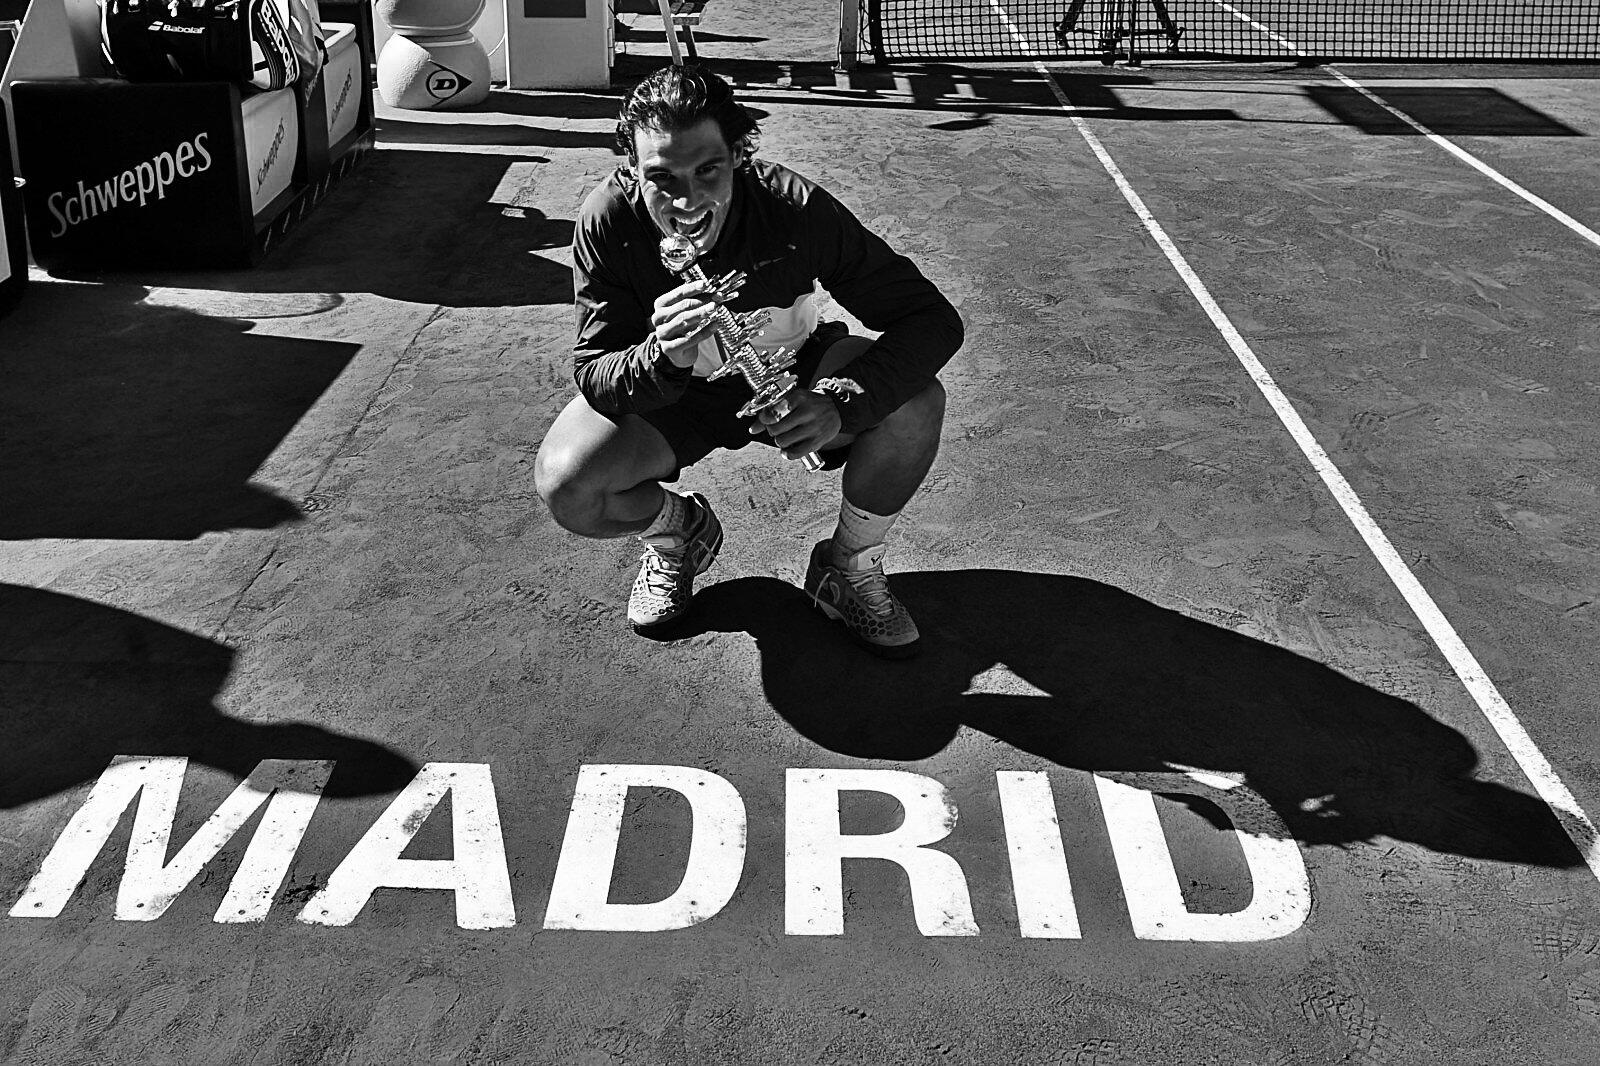 """You feel loved, you feel special when you play in front of your audience"" #Nadal #Madrid http://t.co/O7YXWmBwvB"